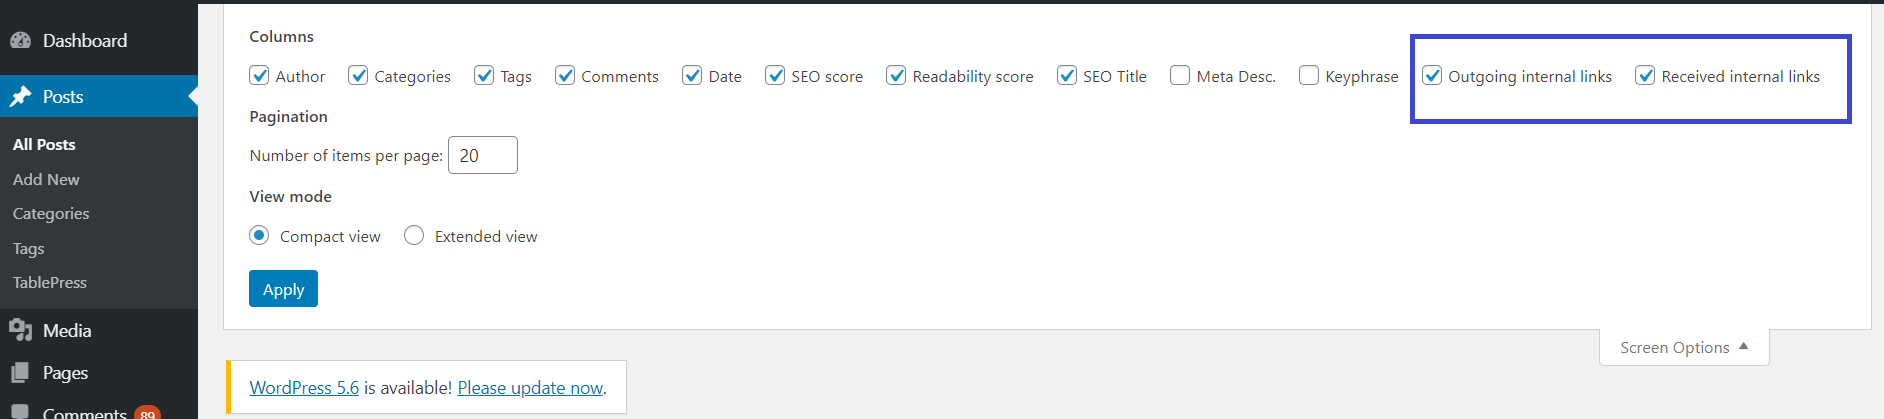 Incoming links are not getting displayed in WordPress dashboard